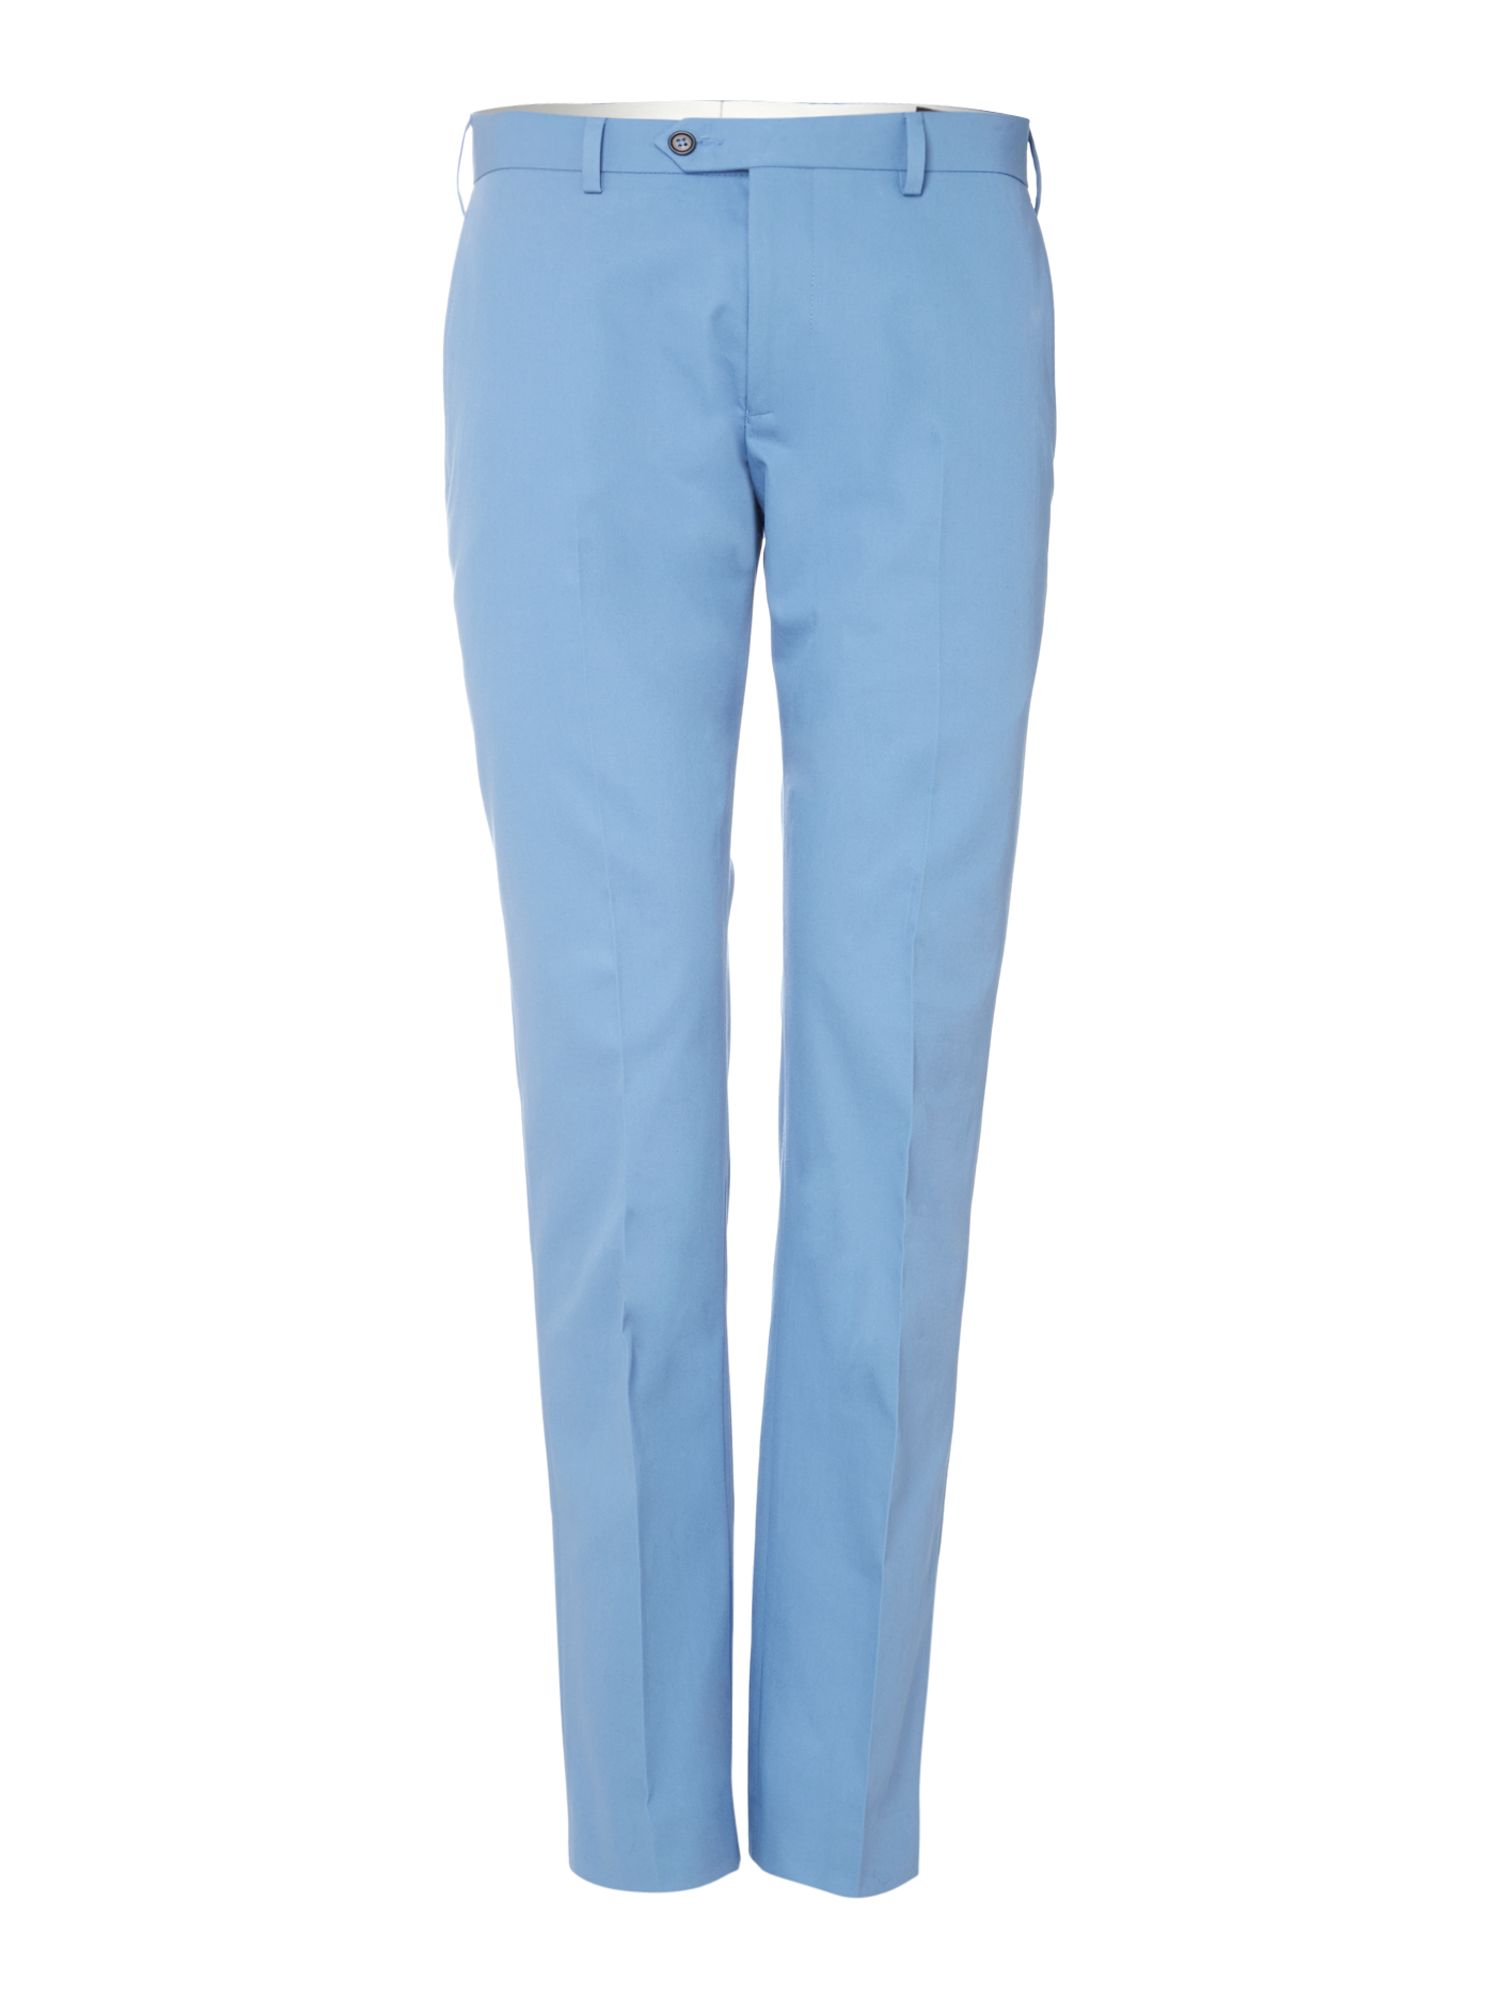 Rubicon slim leg trousers